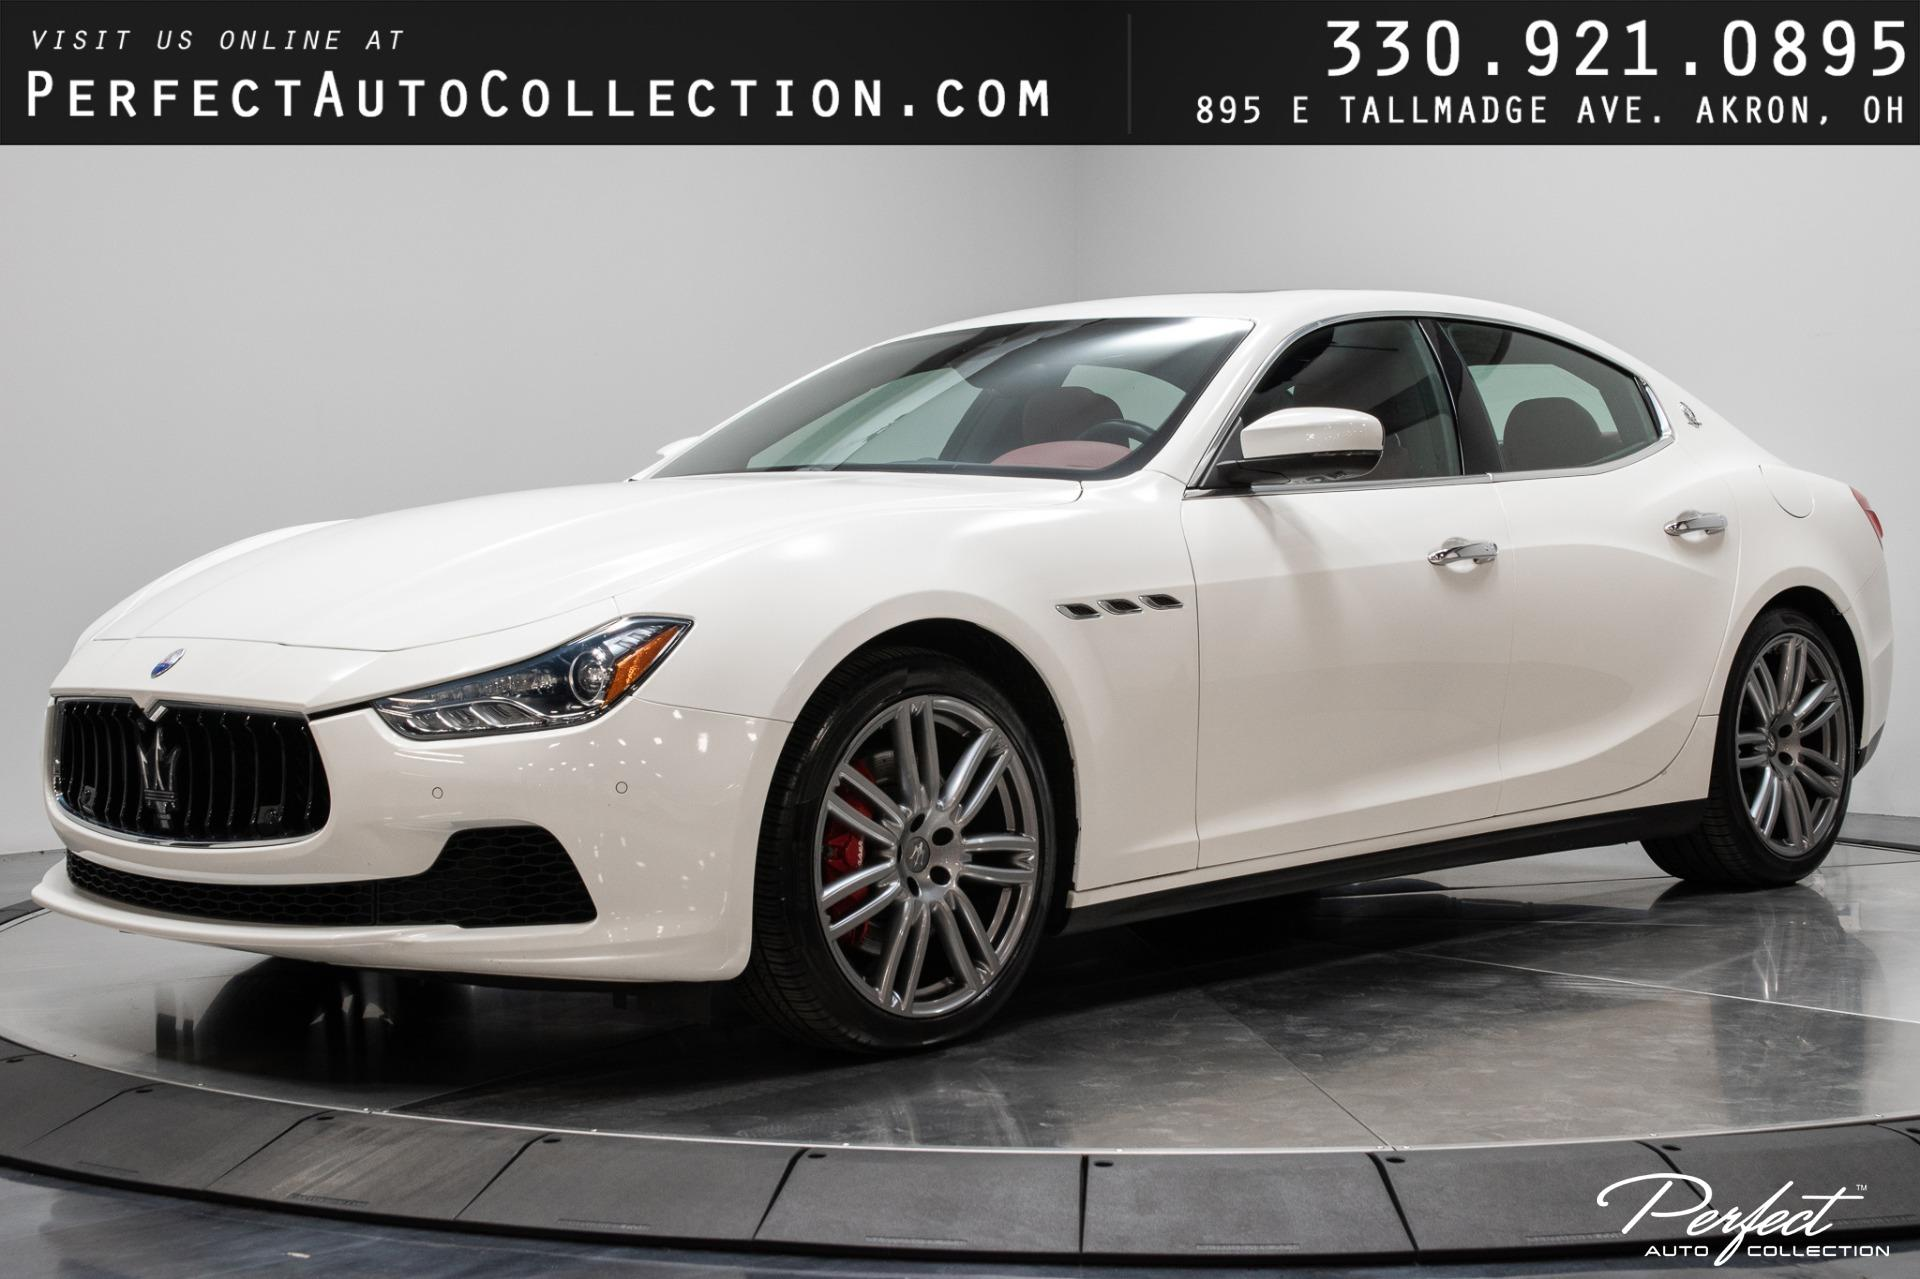 Used 2017 Maserati Ghibli S Q4 for sale $40,993 at Perfect Auto Collection in Akron OH 44310 1